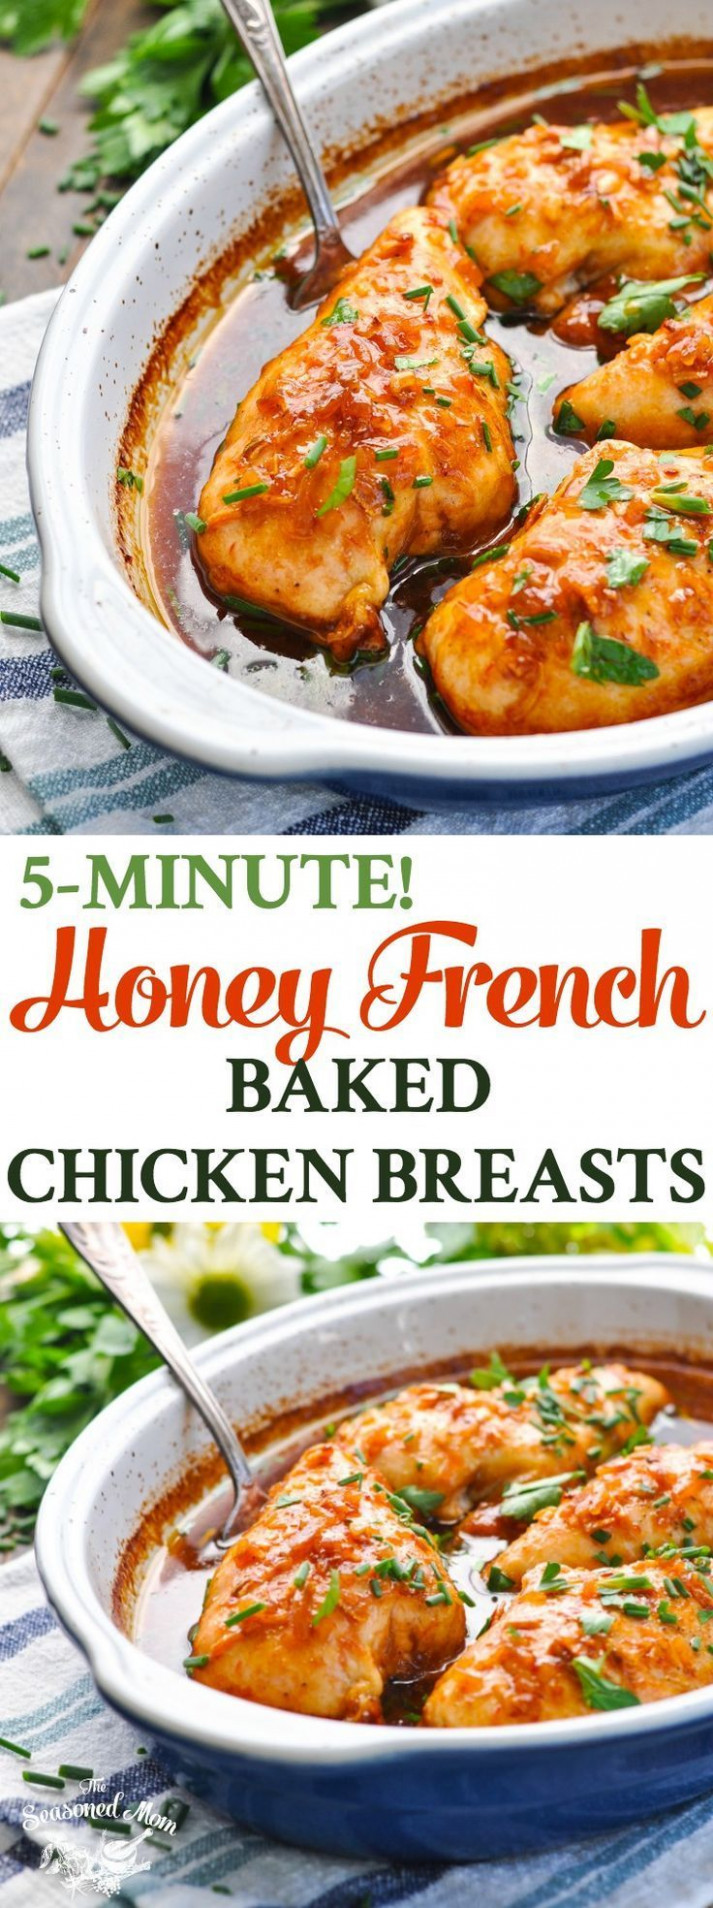 15 Minute Honey French Baked Chicken Breasts - Recipes Ideas With Chicken